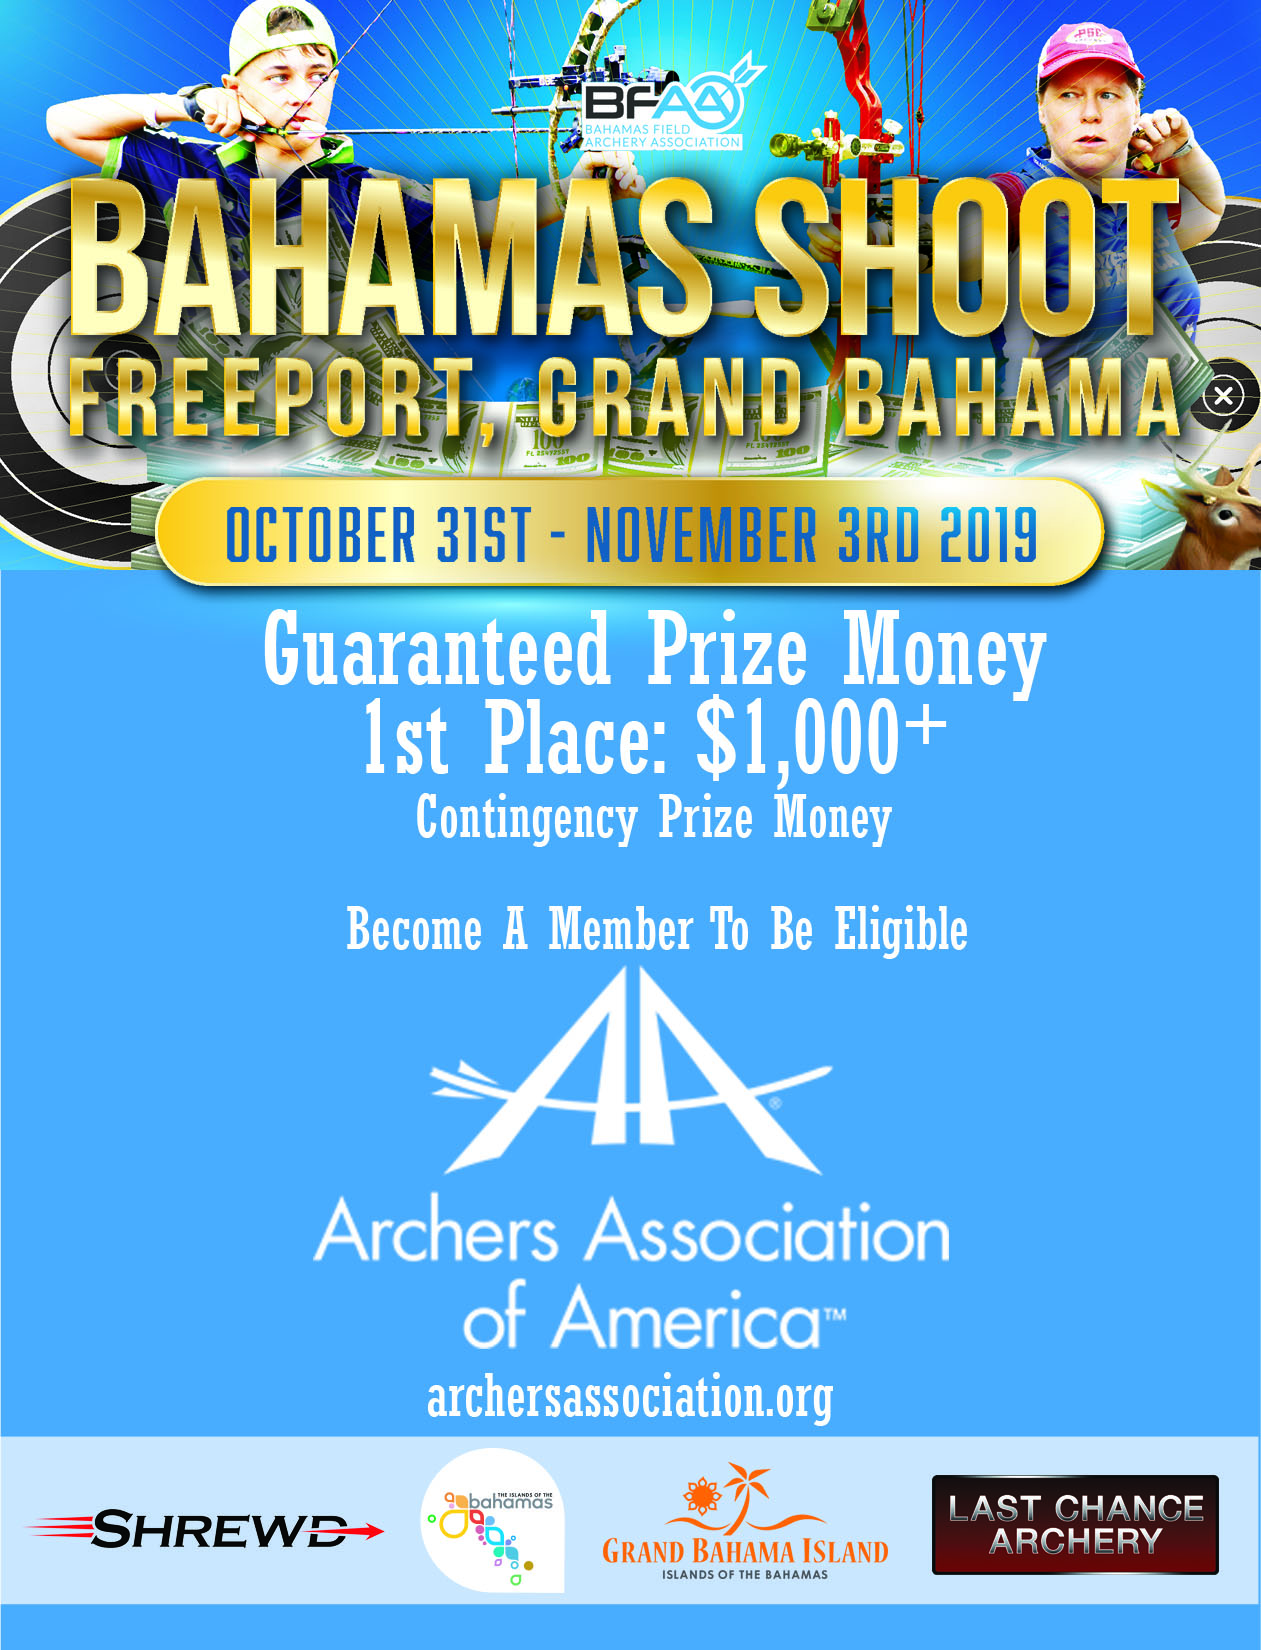 Bahamas Shoot - 10% Discount